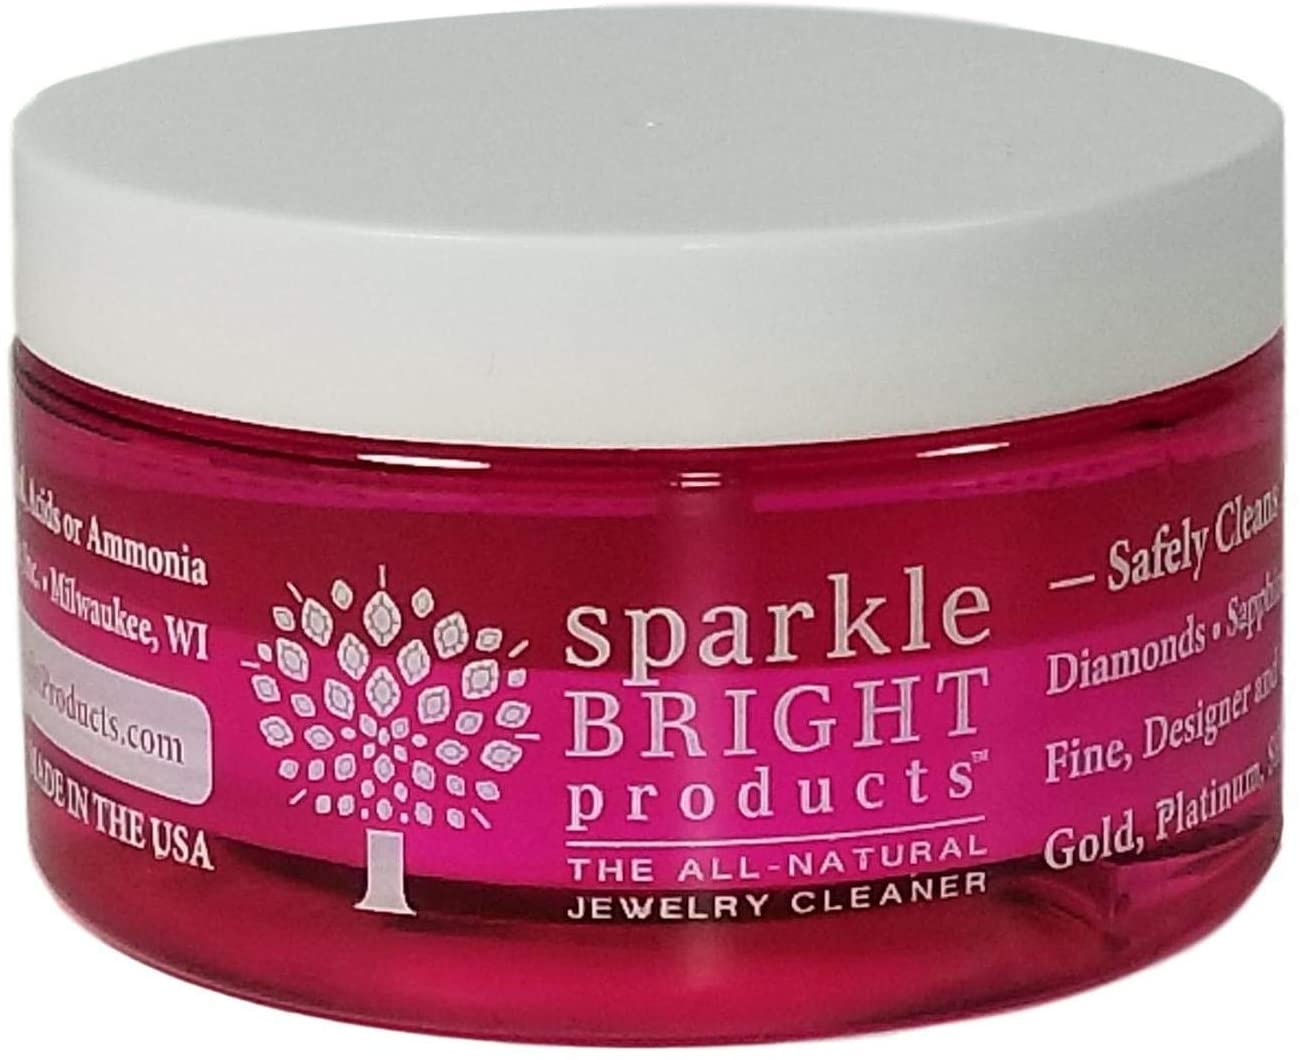 3. Sparkle Bright Jewelry Cleaner